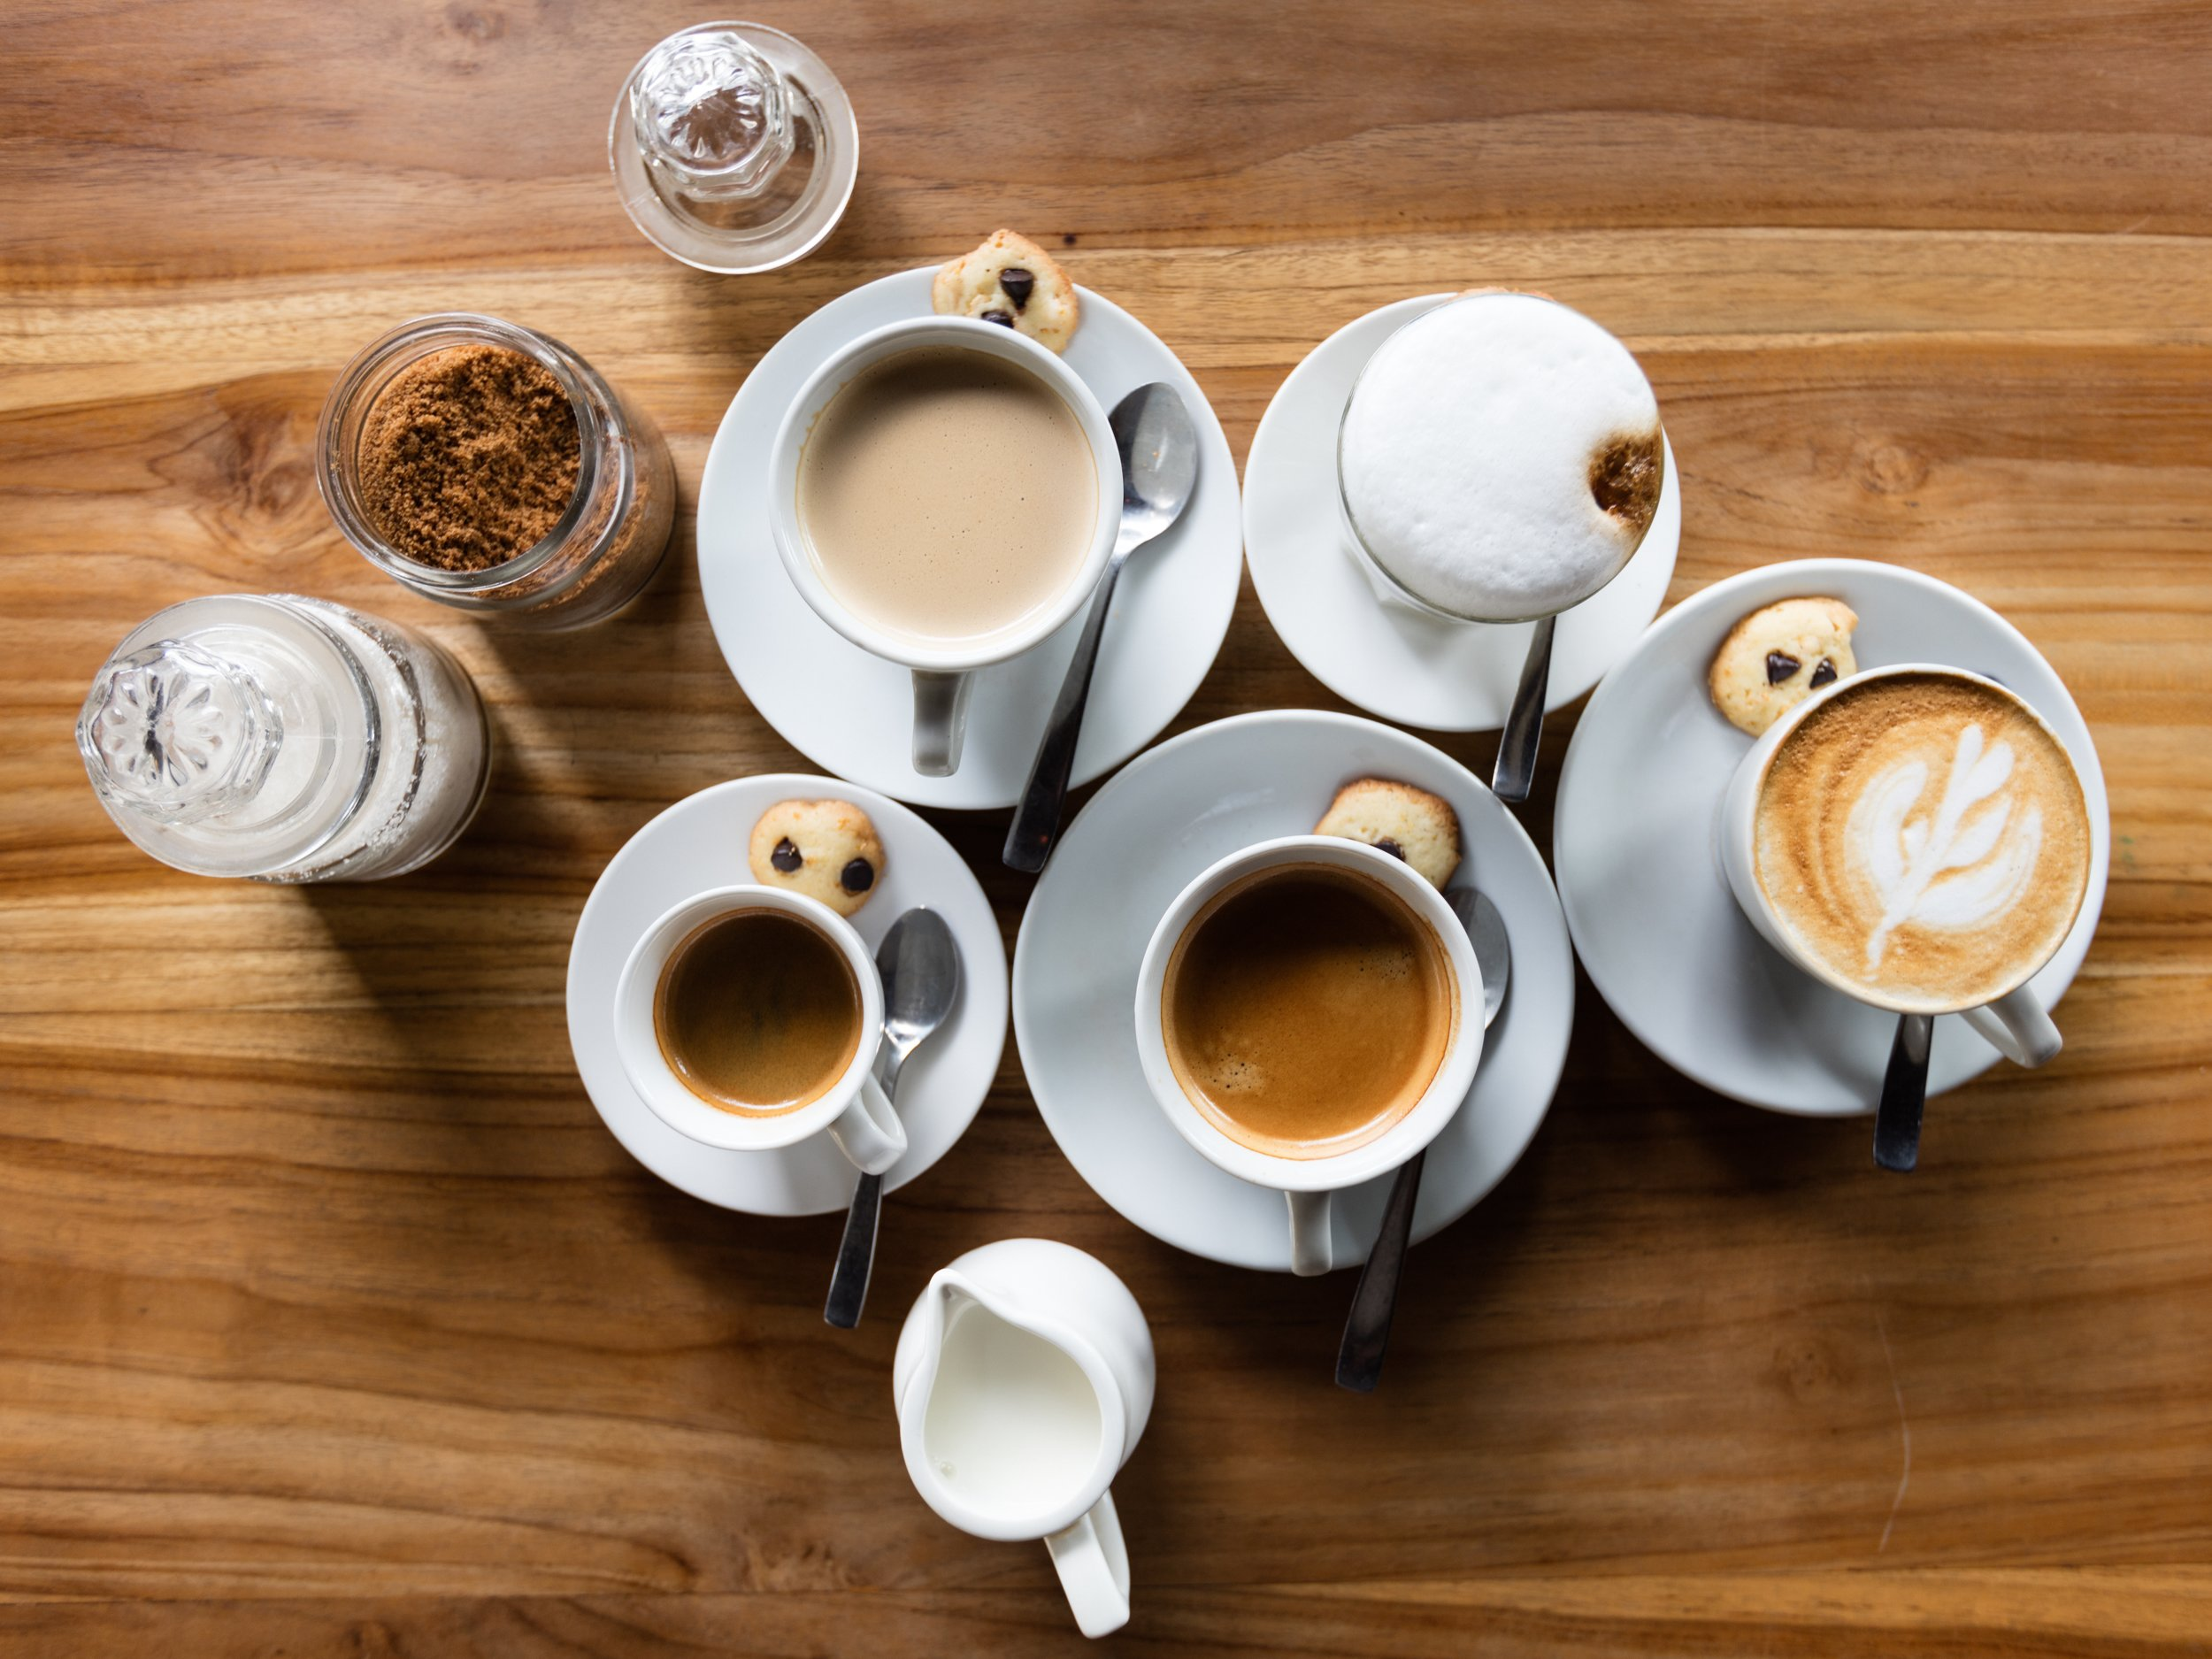 5) Alcohol and caffeine - Your depth of sleep won't be as good after drinking either of these. Caffeine is a stimulant so avoid drinking after midday as it takes over 12 hours to leave the brain. Alcohol is actually a sedative, which blocks REM (dream) sleep meaning you wake several times during the night.Switch to decaffeinated teaand coffeealternatives and herbal teas.